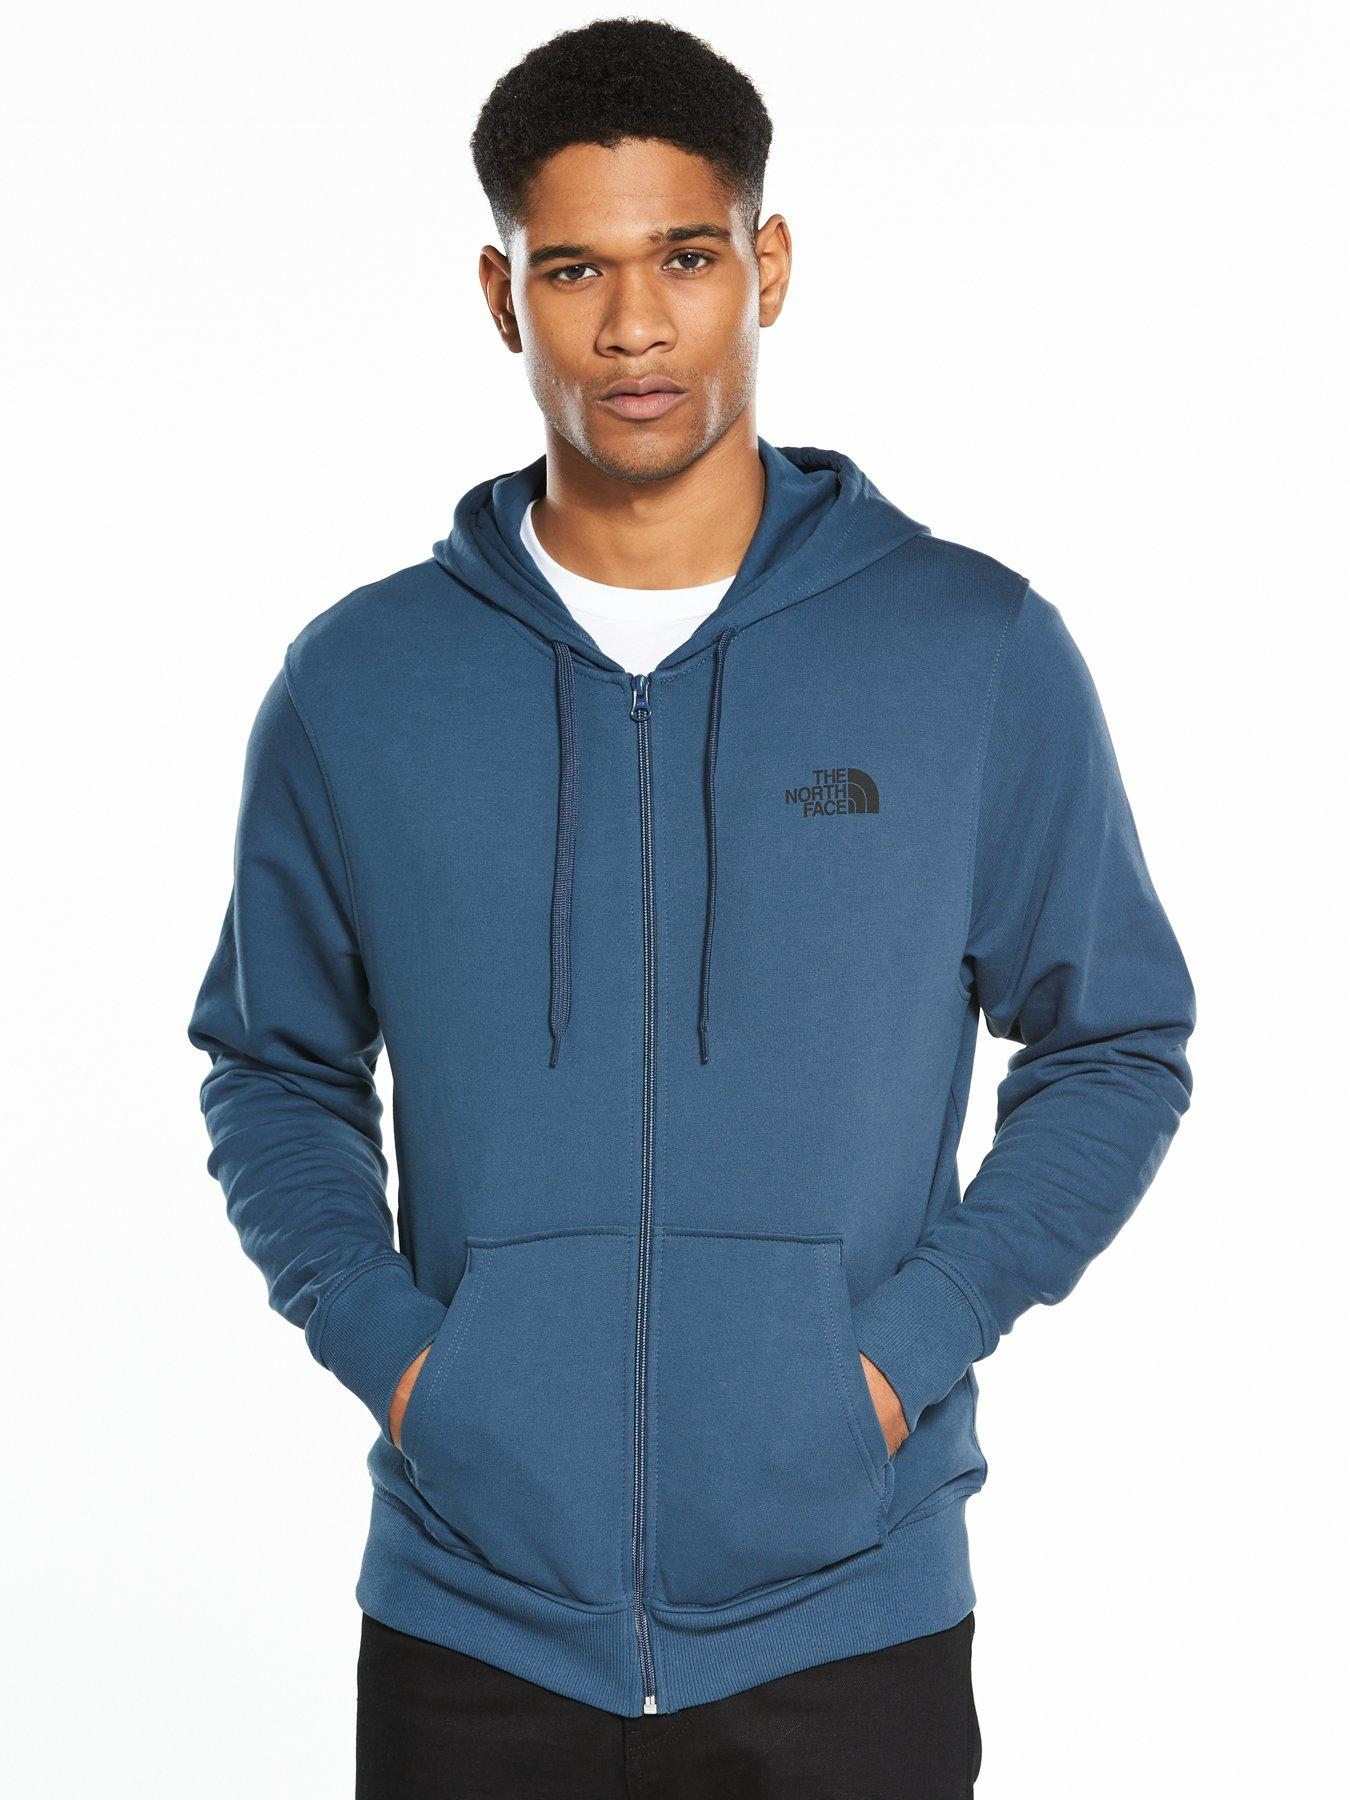 The North Face Open Gate Overhead Hooded Top CP1158